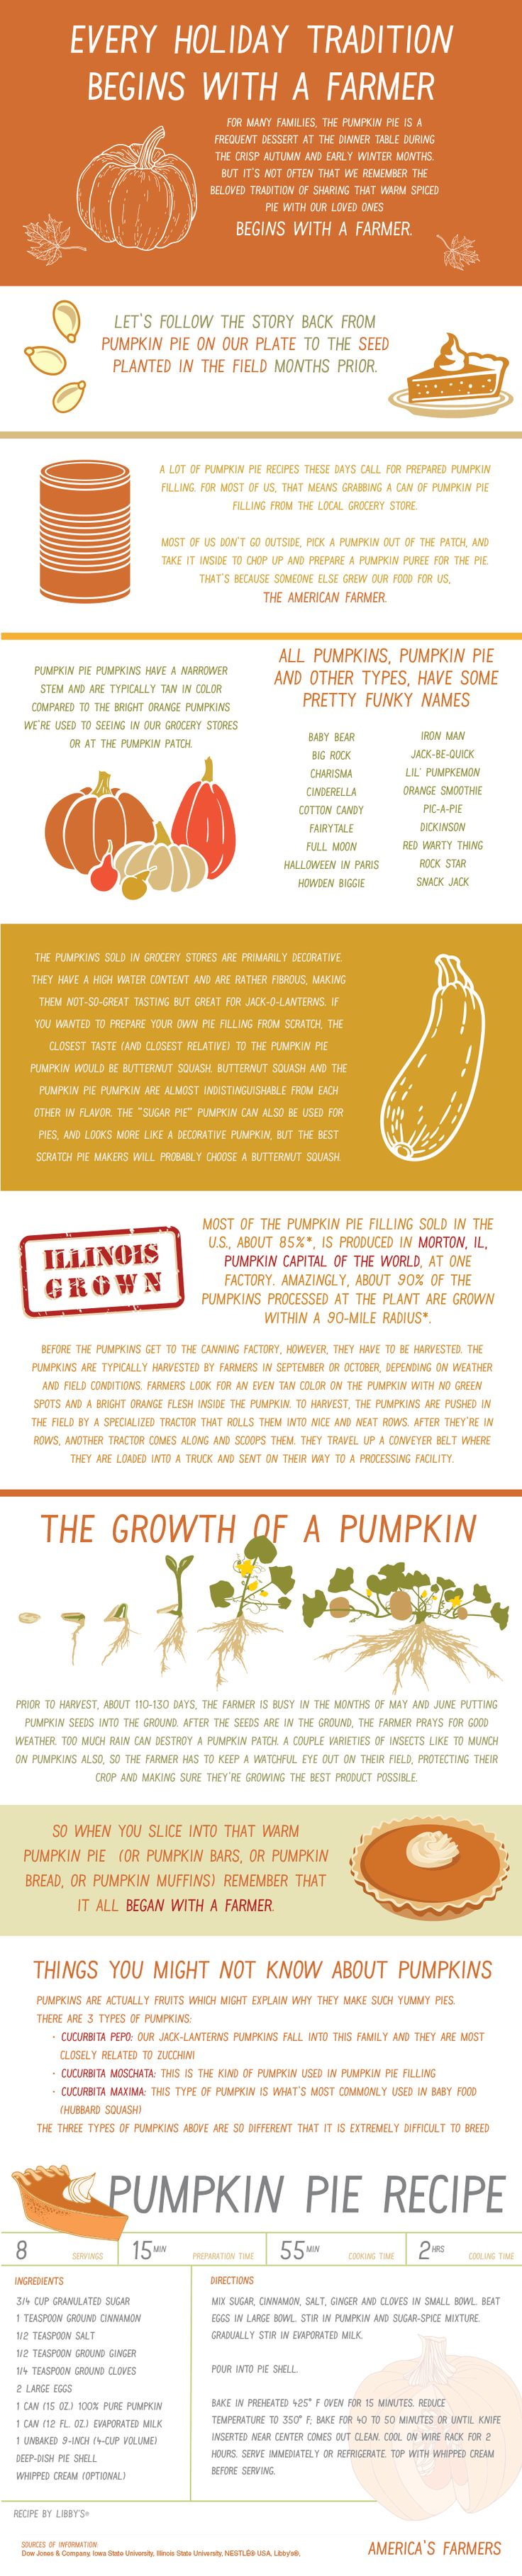 Every Holiday Tradition Begins with a Farmer  Follow the Story of Pumpkin Pie from Seed to Plate